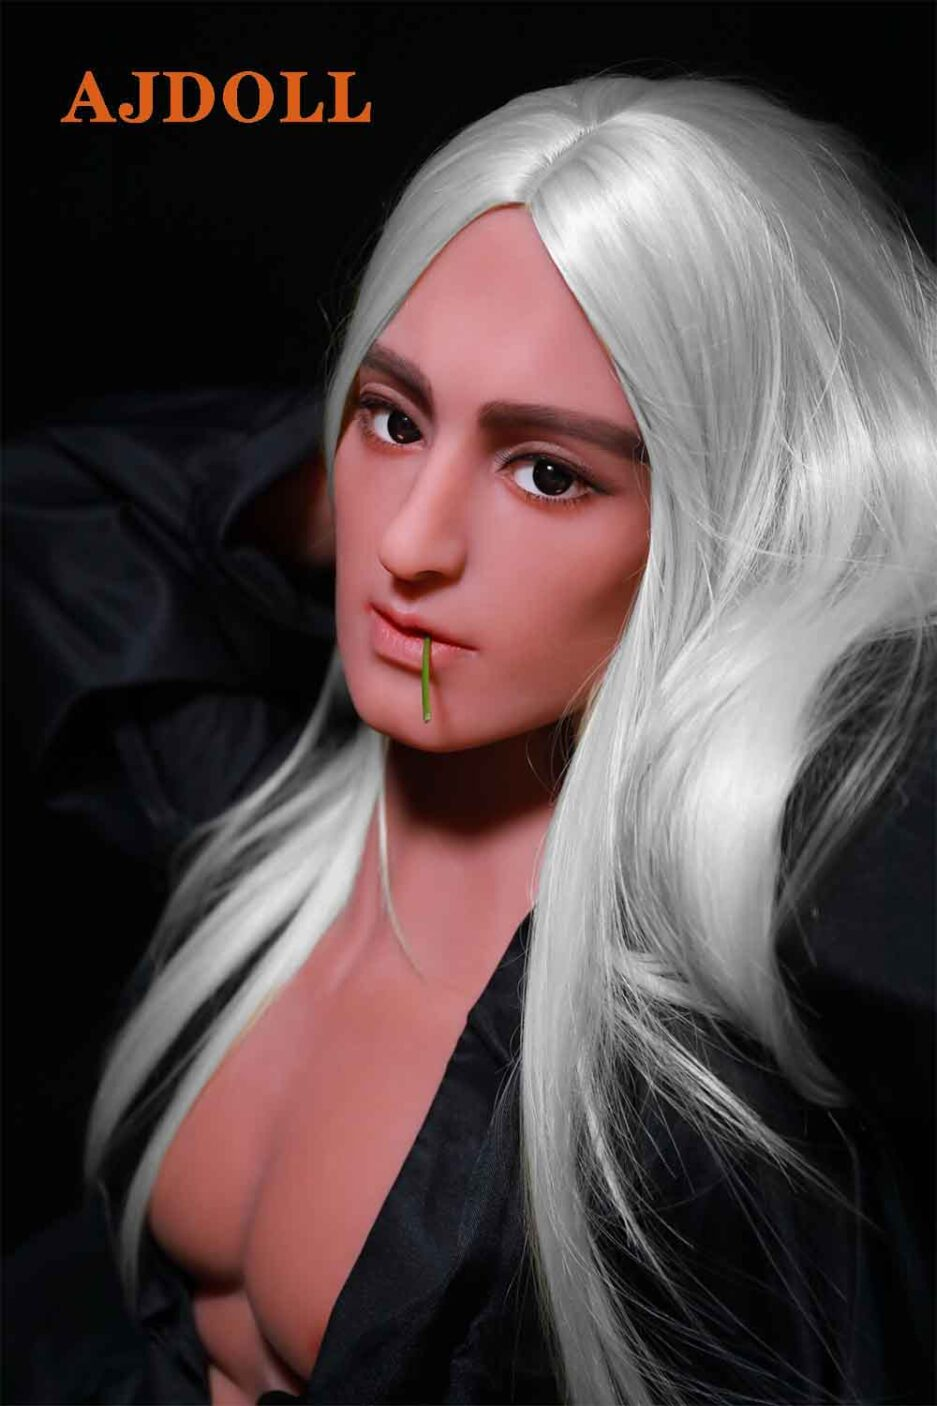 Male sex doll with white hair